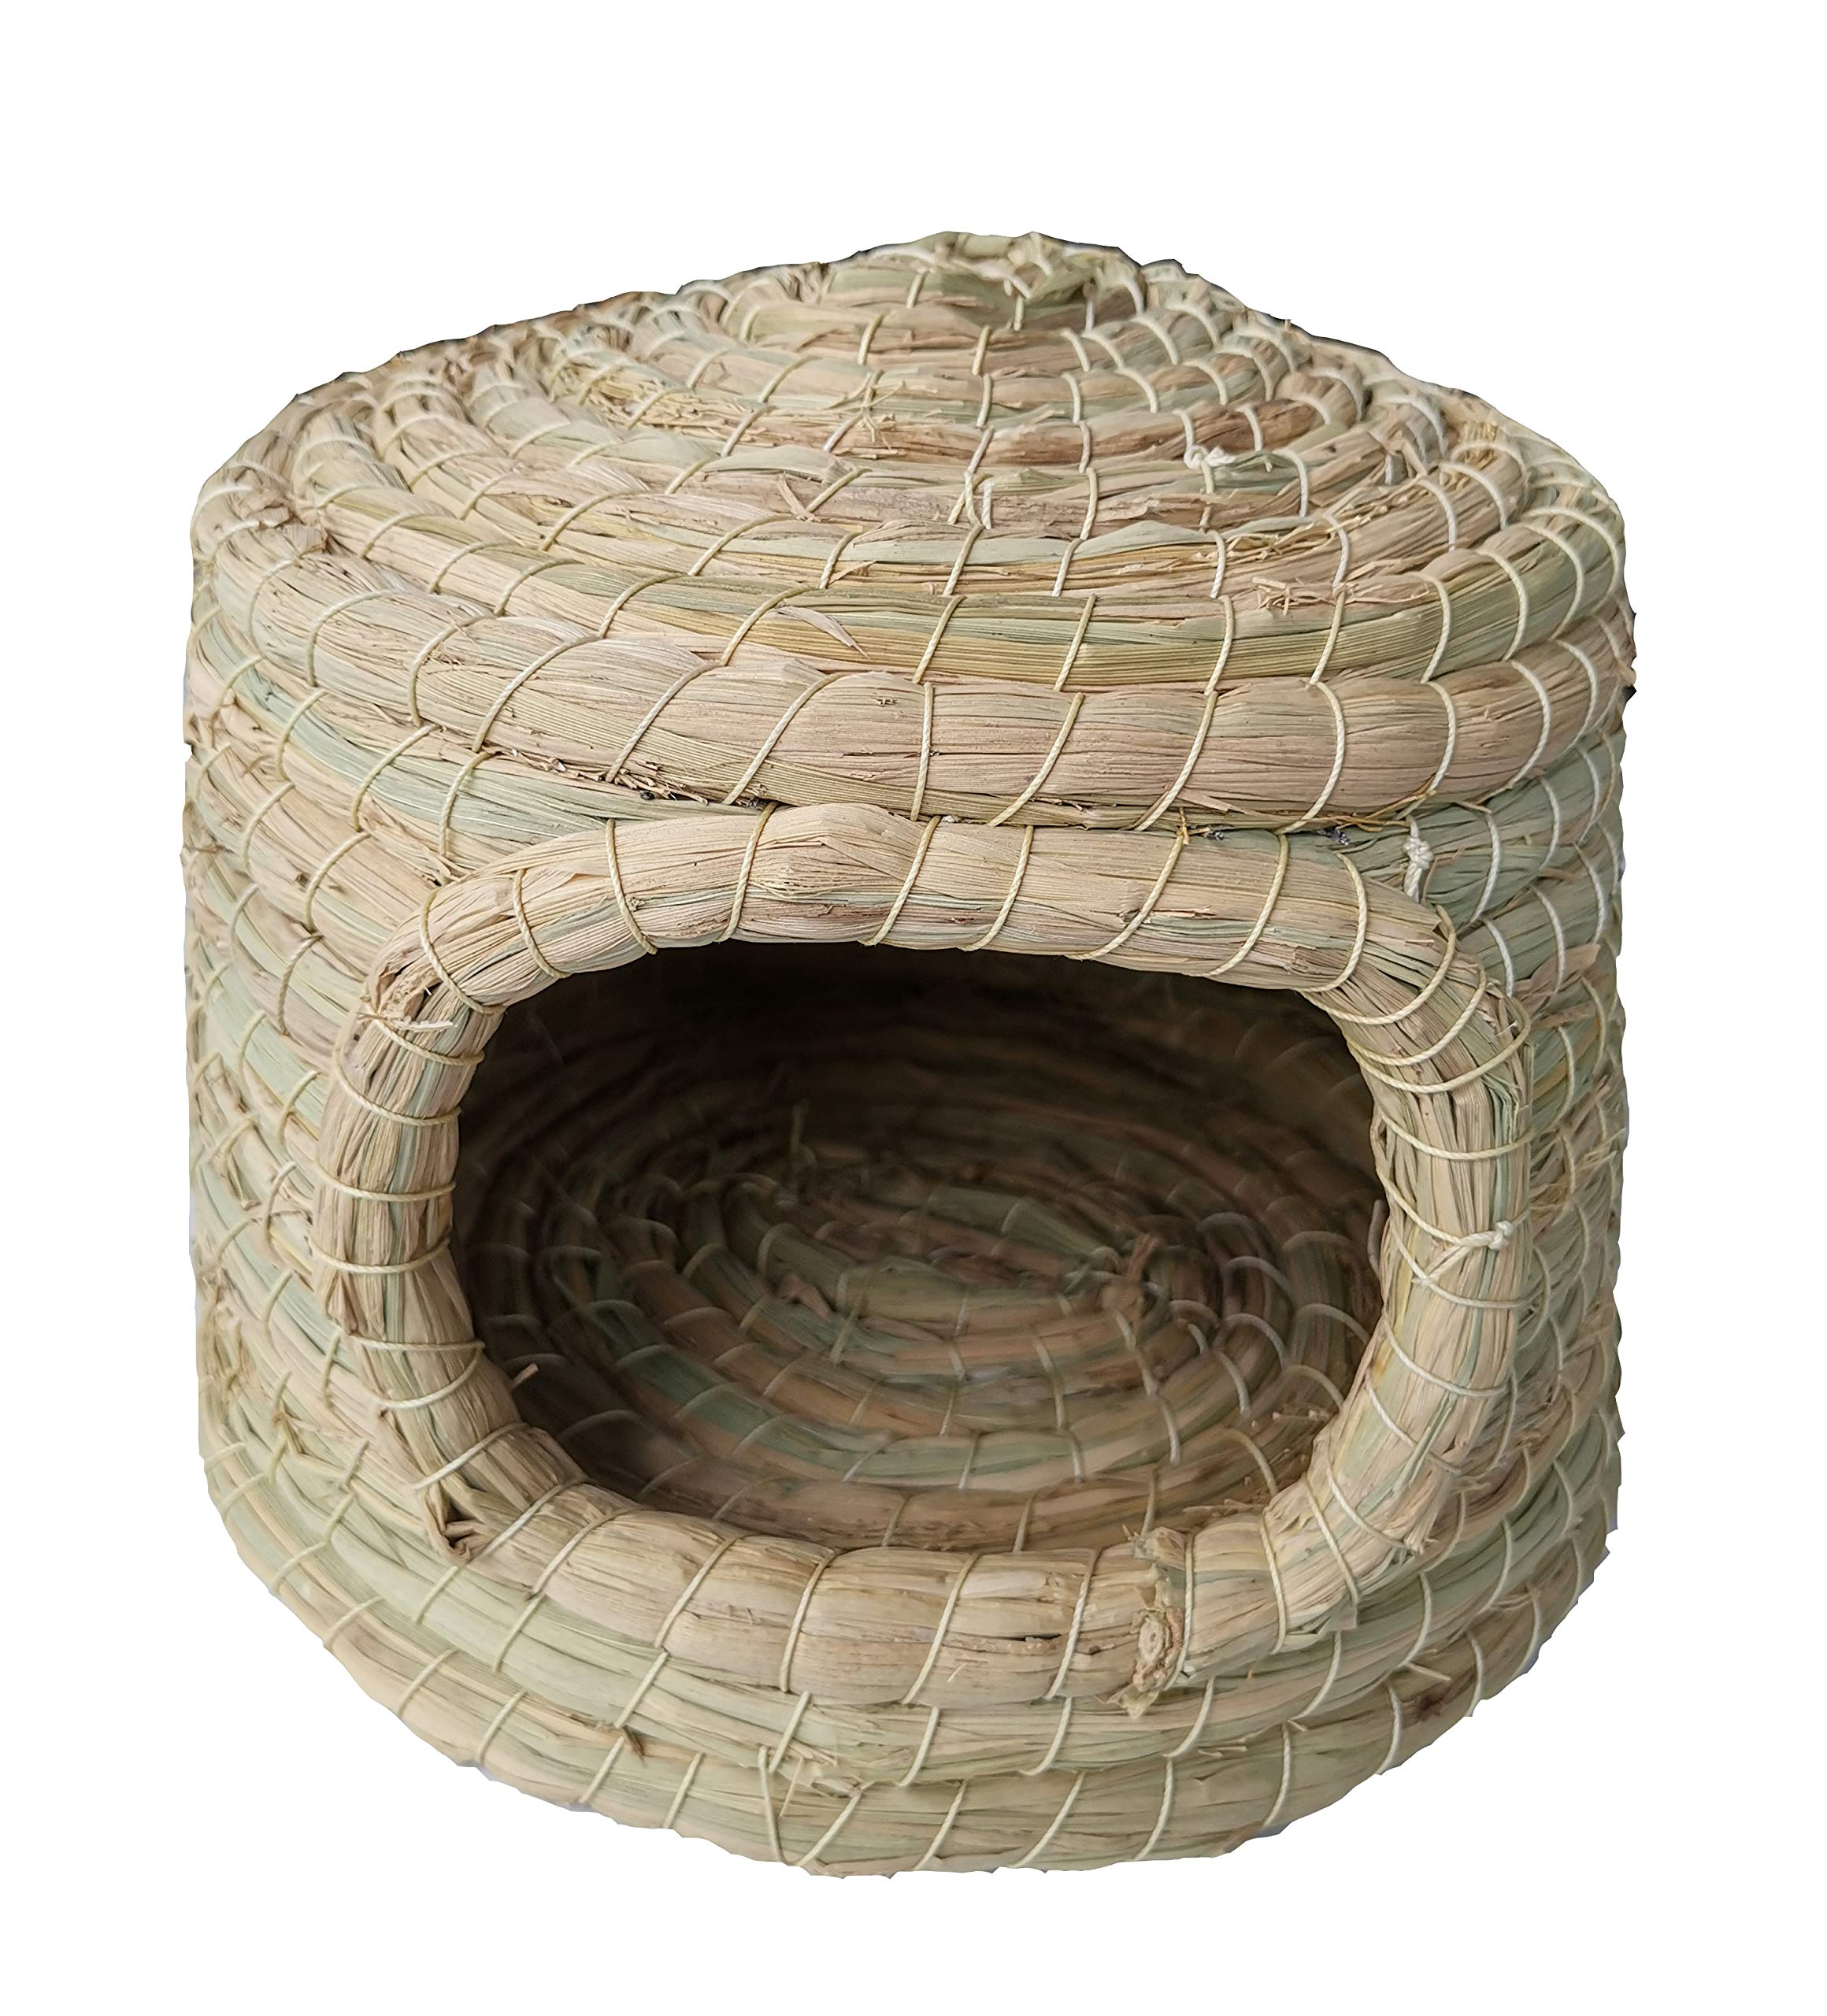 WOWOWMEOW Handmade Small Animal Natural Woven Grass Hammock Cave Bed for Guinea-Pigs, Rabbits, Hamsters, Squirrels, Chinchillas and Hedgehogs (M)